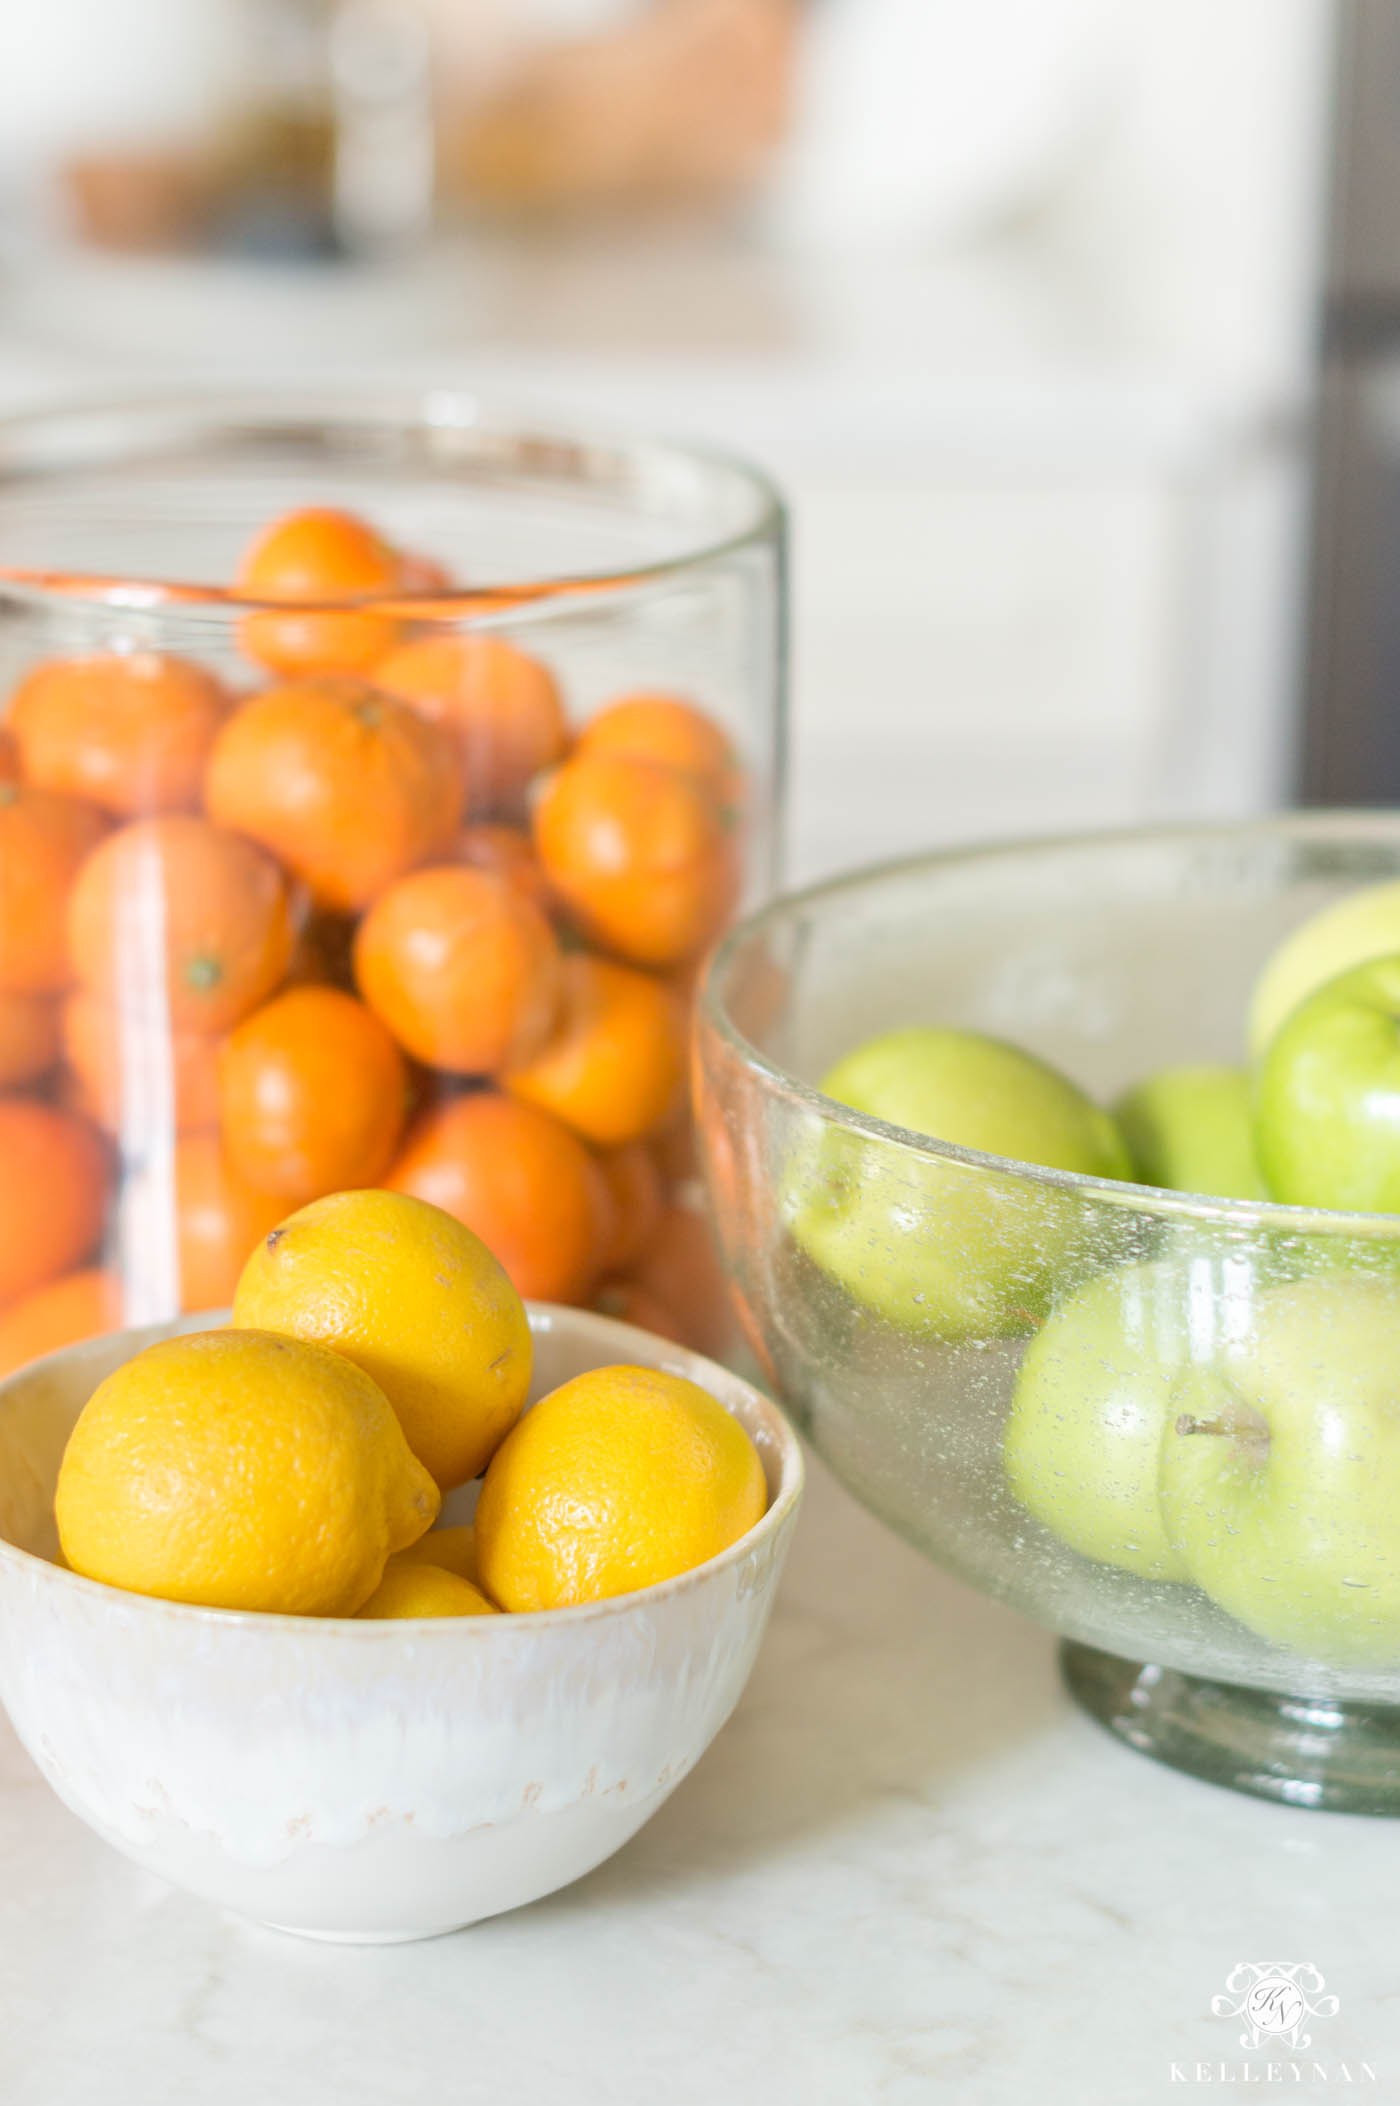 Spring kitchen decorating ideas with citrus fruit, lemons, oranges, and apples